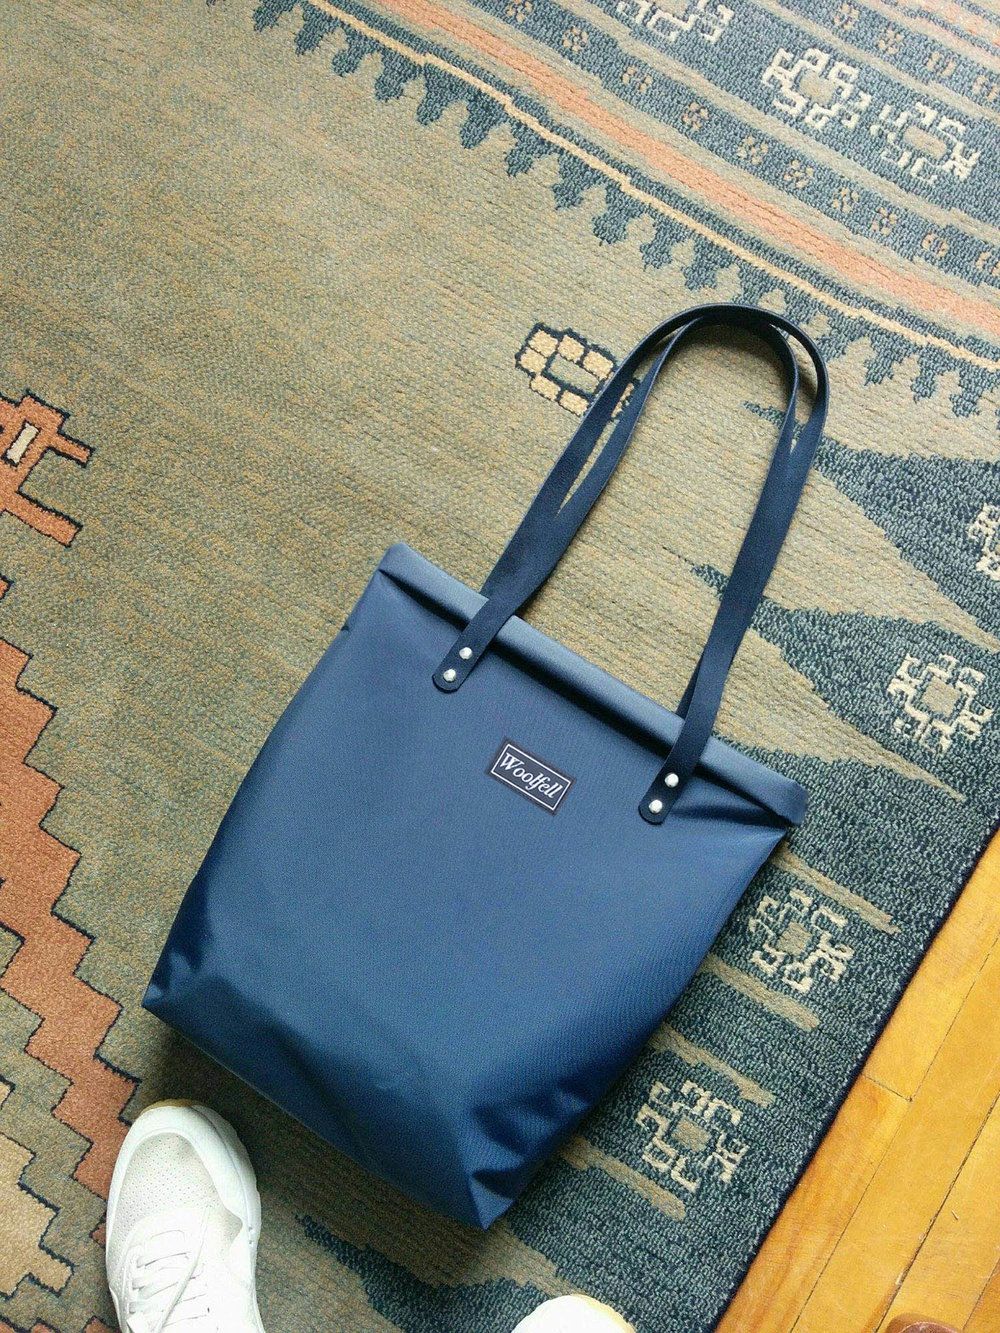 Nylon tote bag with suede handles